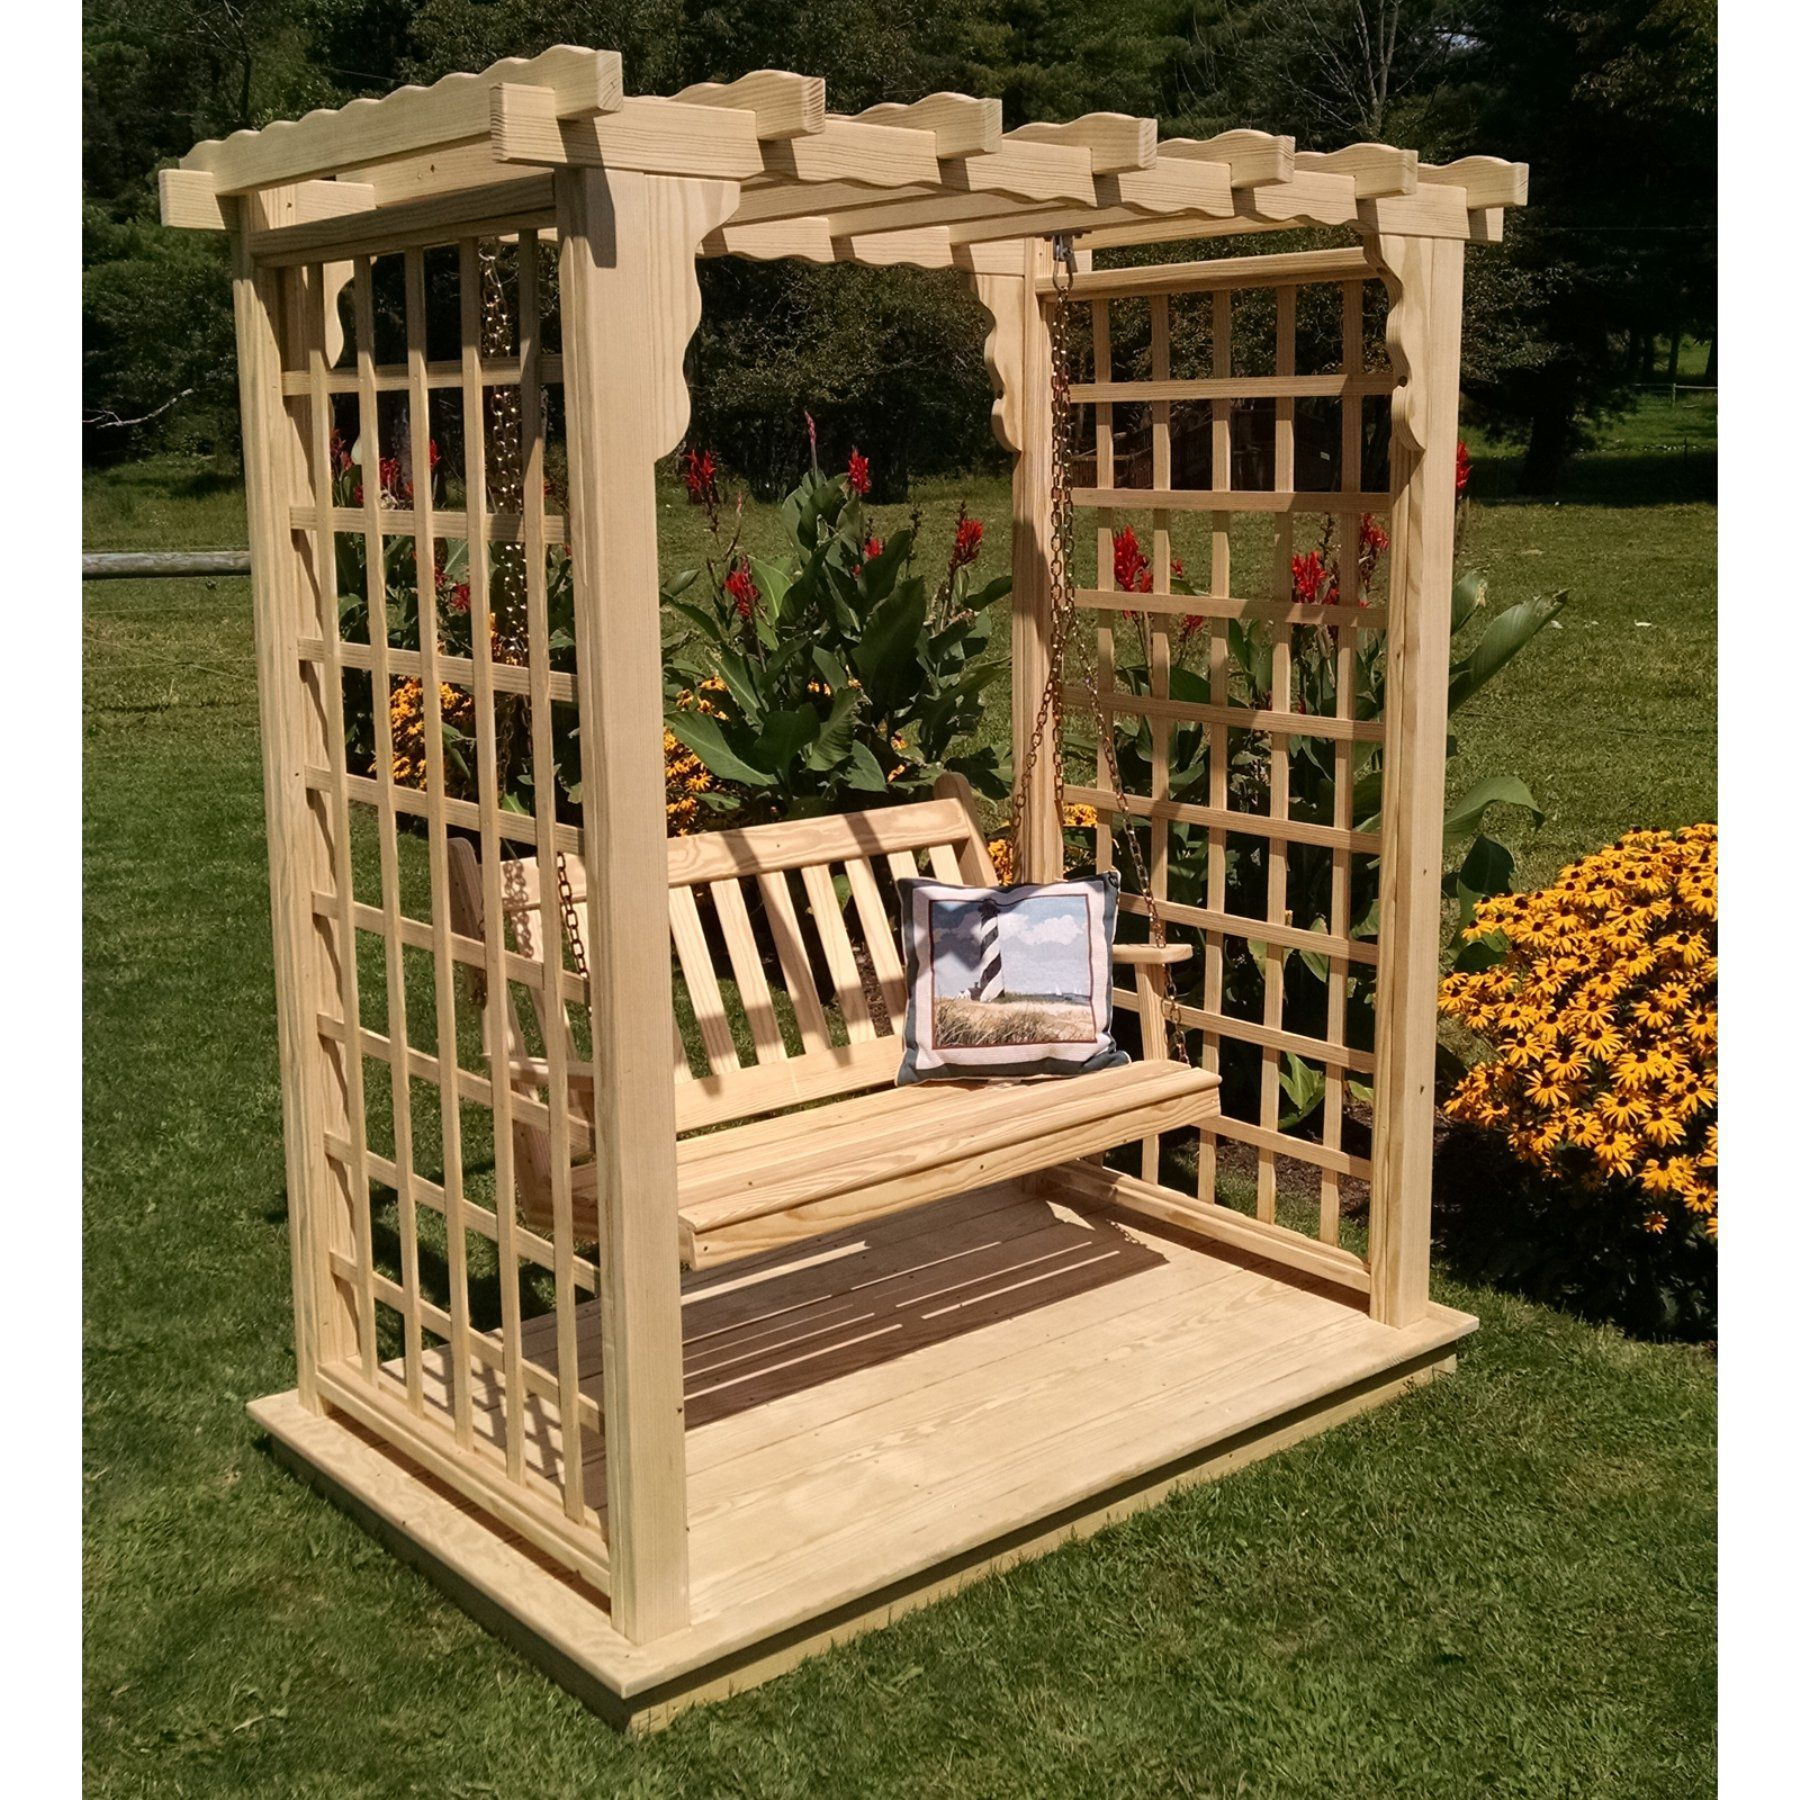 A u l furniture lexington ft high wood arbor with deck and